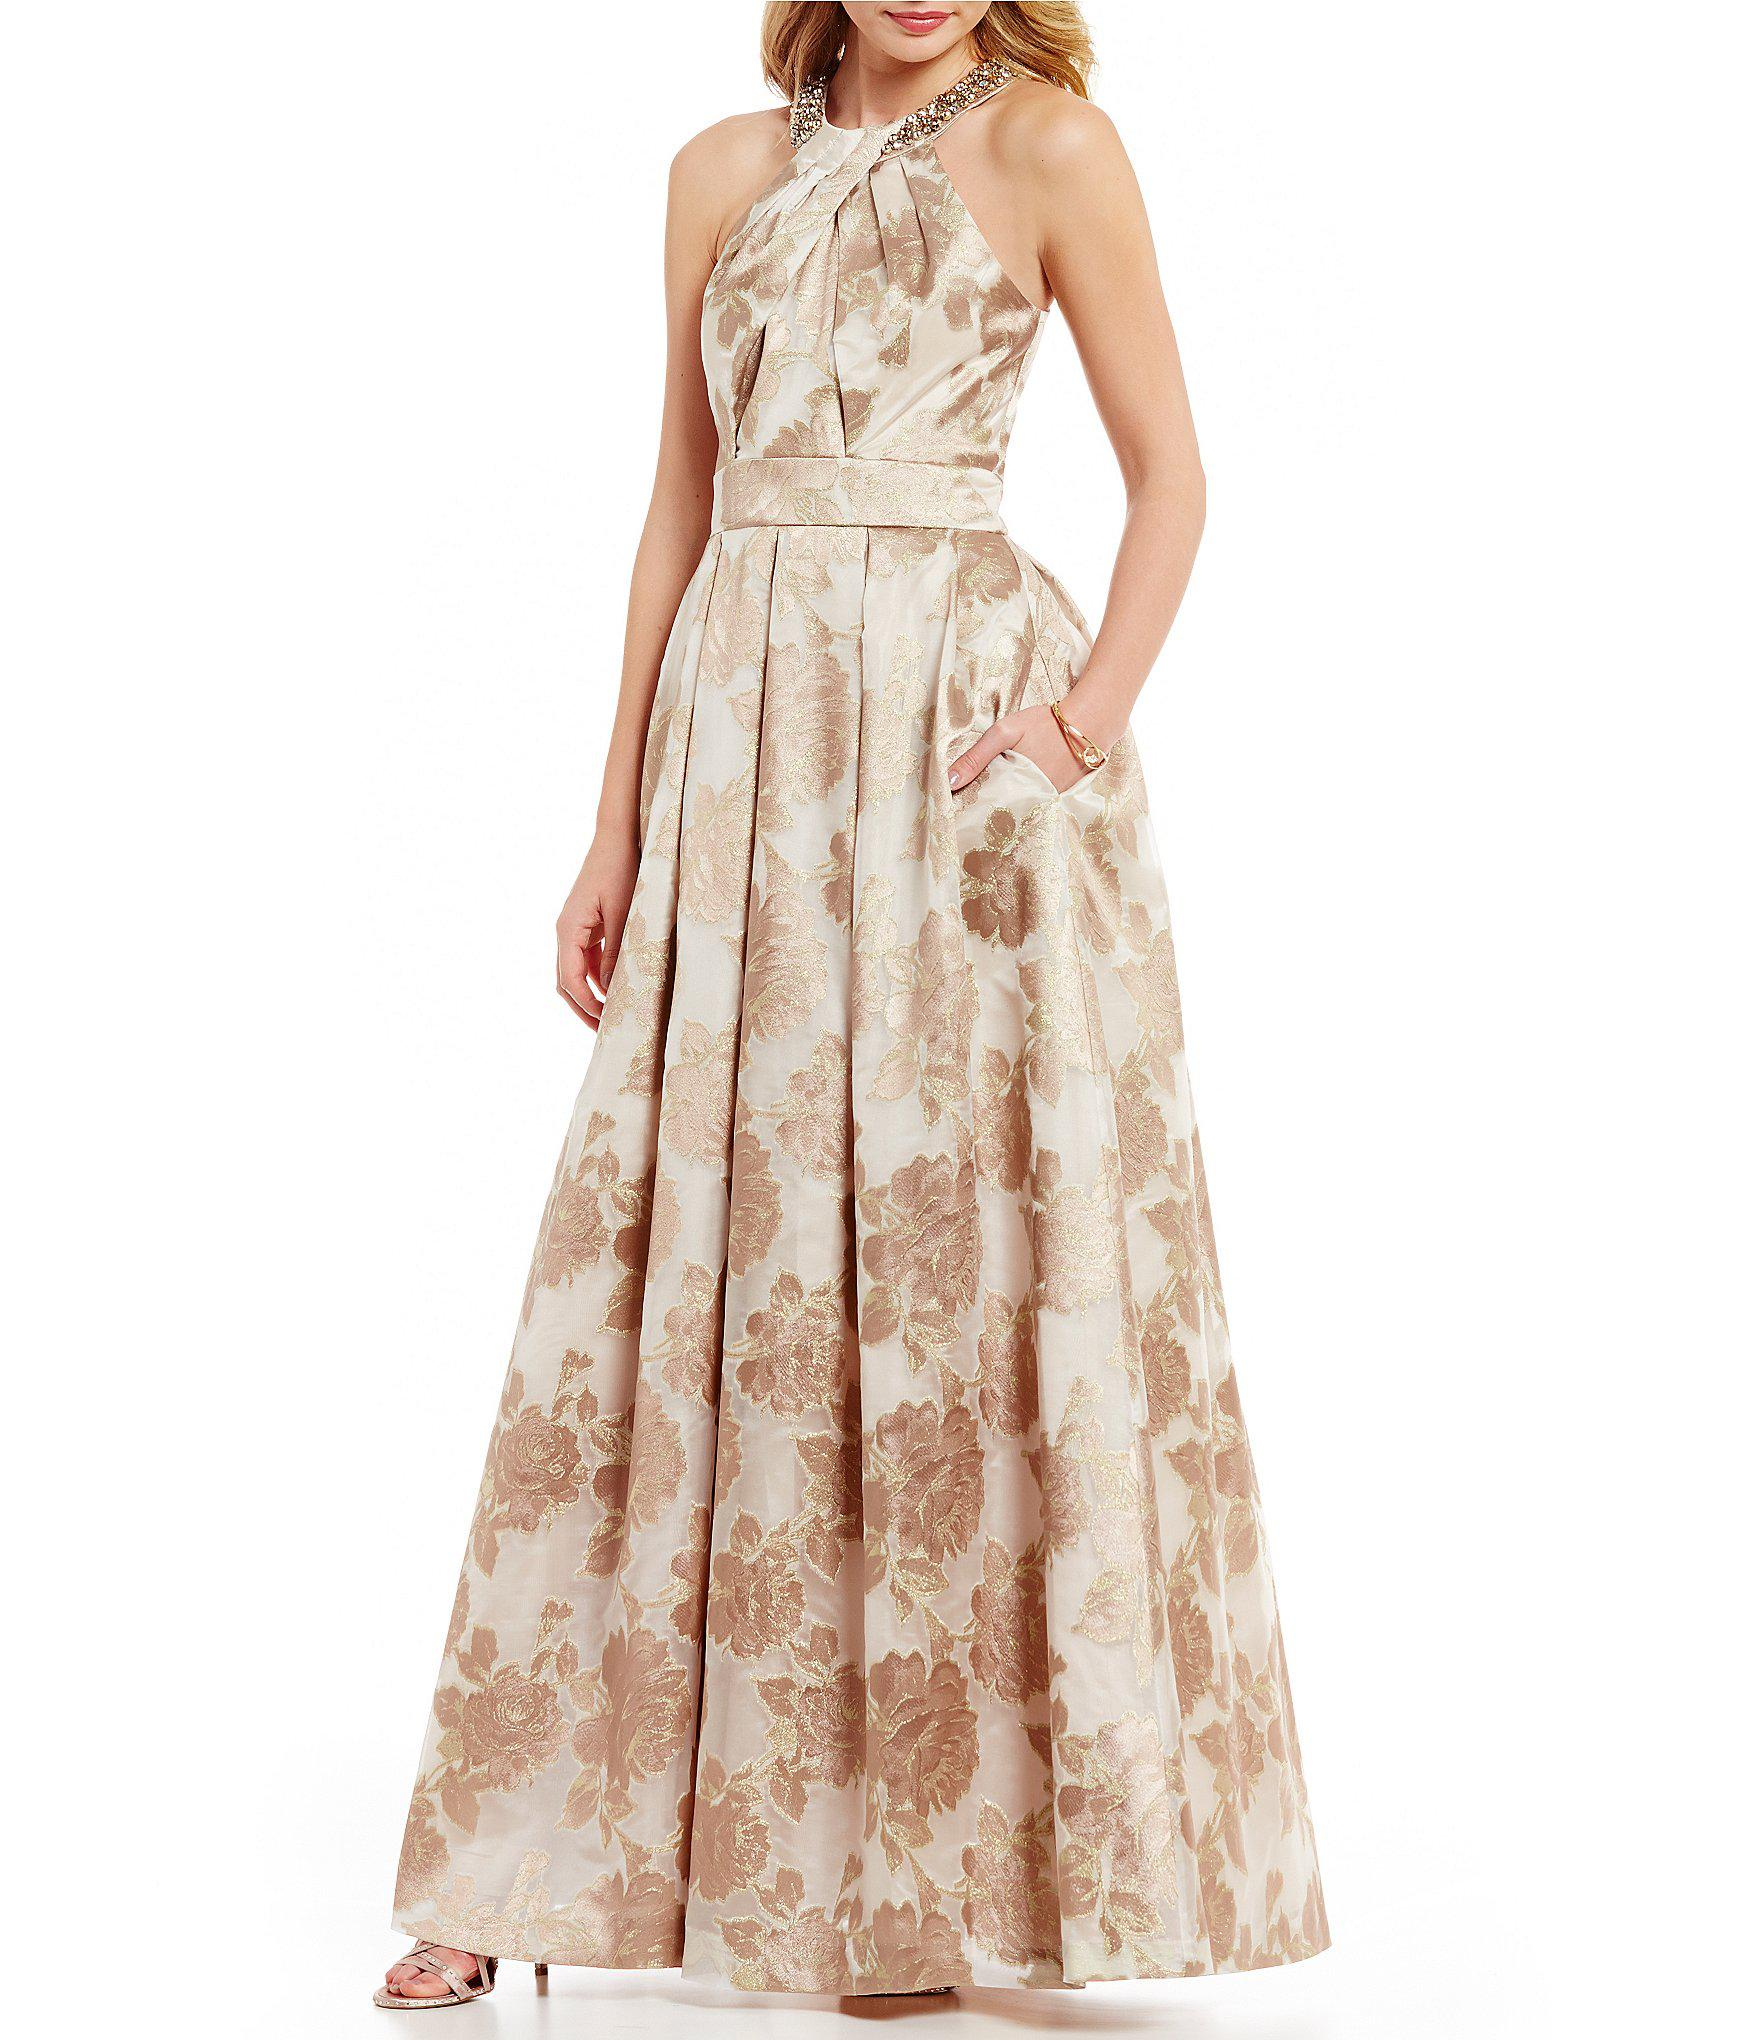 Lyst - Eliza J Beaded Halter Neck Floral Jacquard Ball Gown